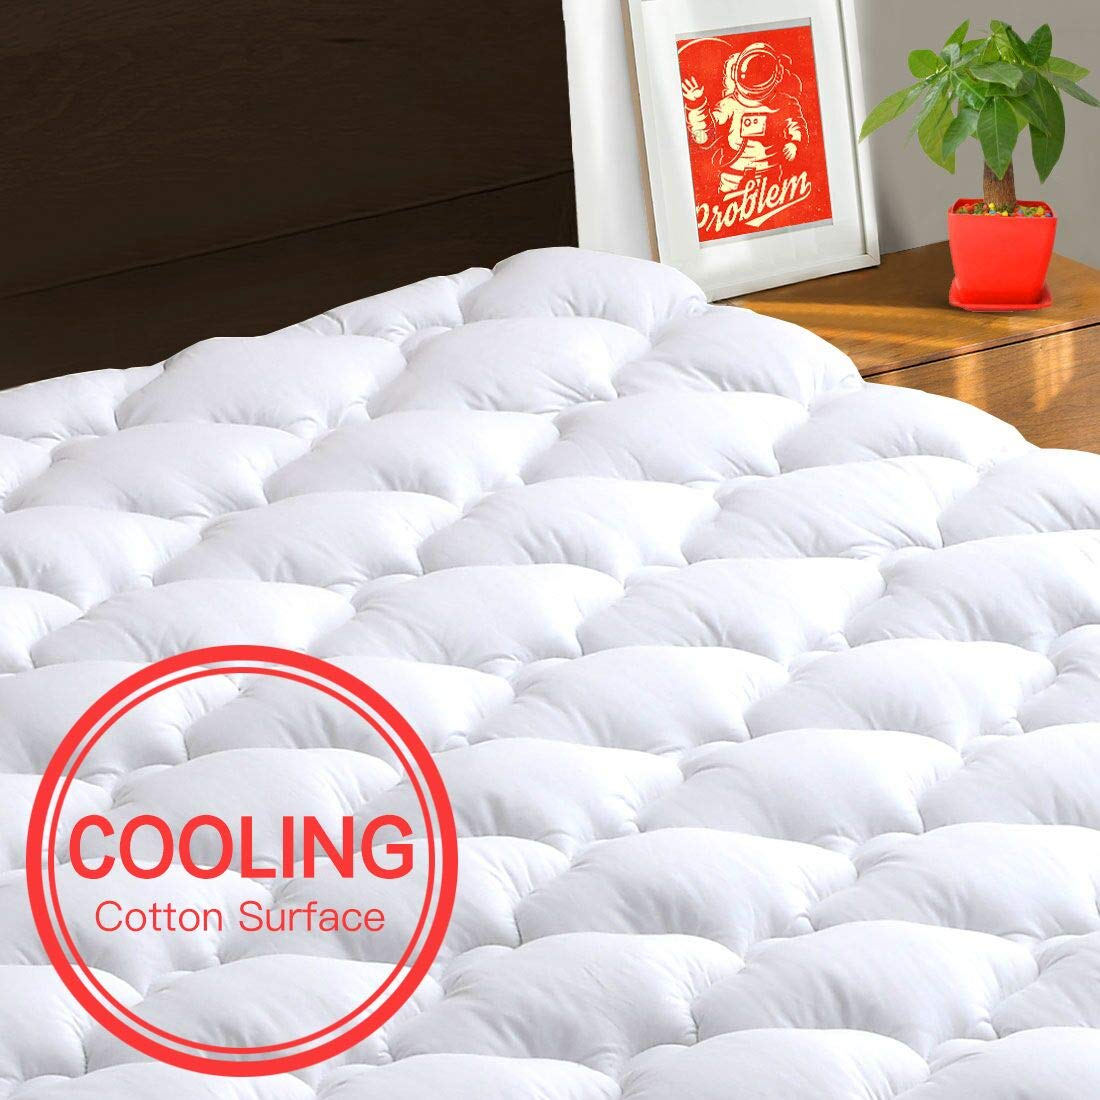 Best Cooling Mattress Pad 2020 – Electric and Quilted